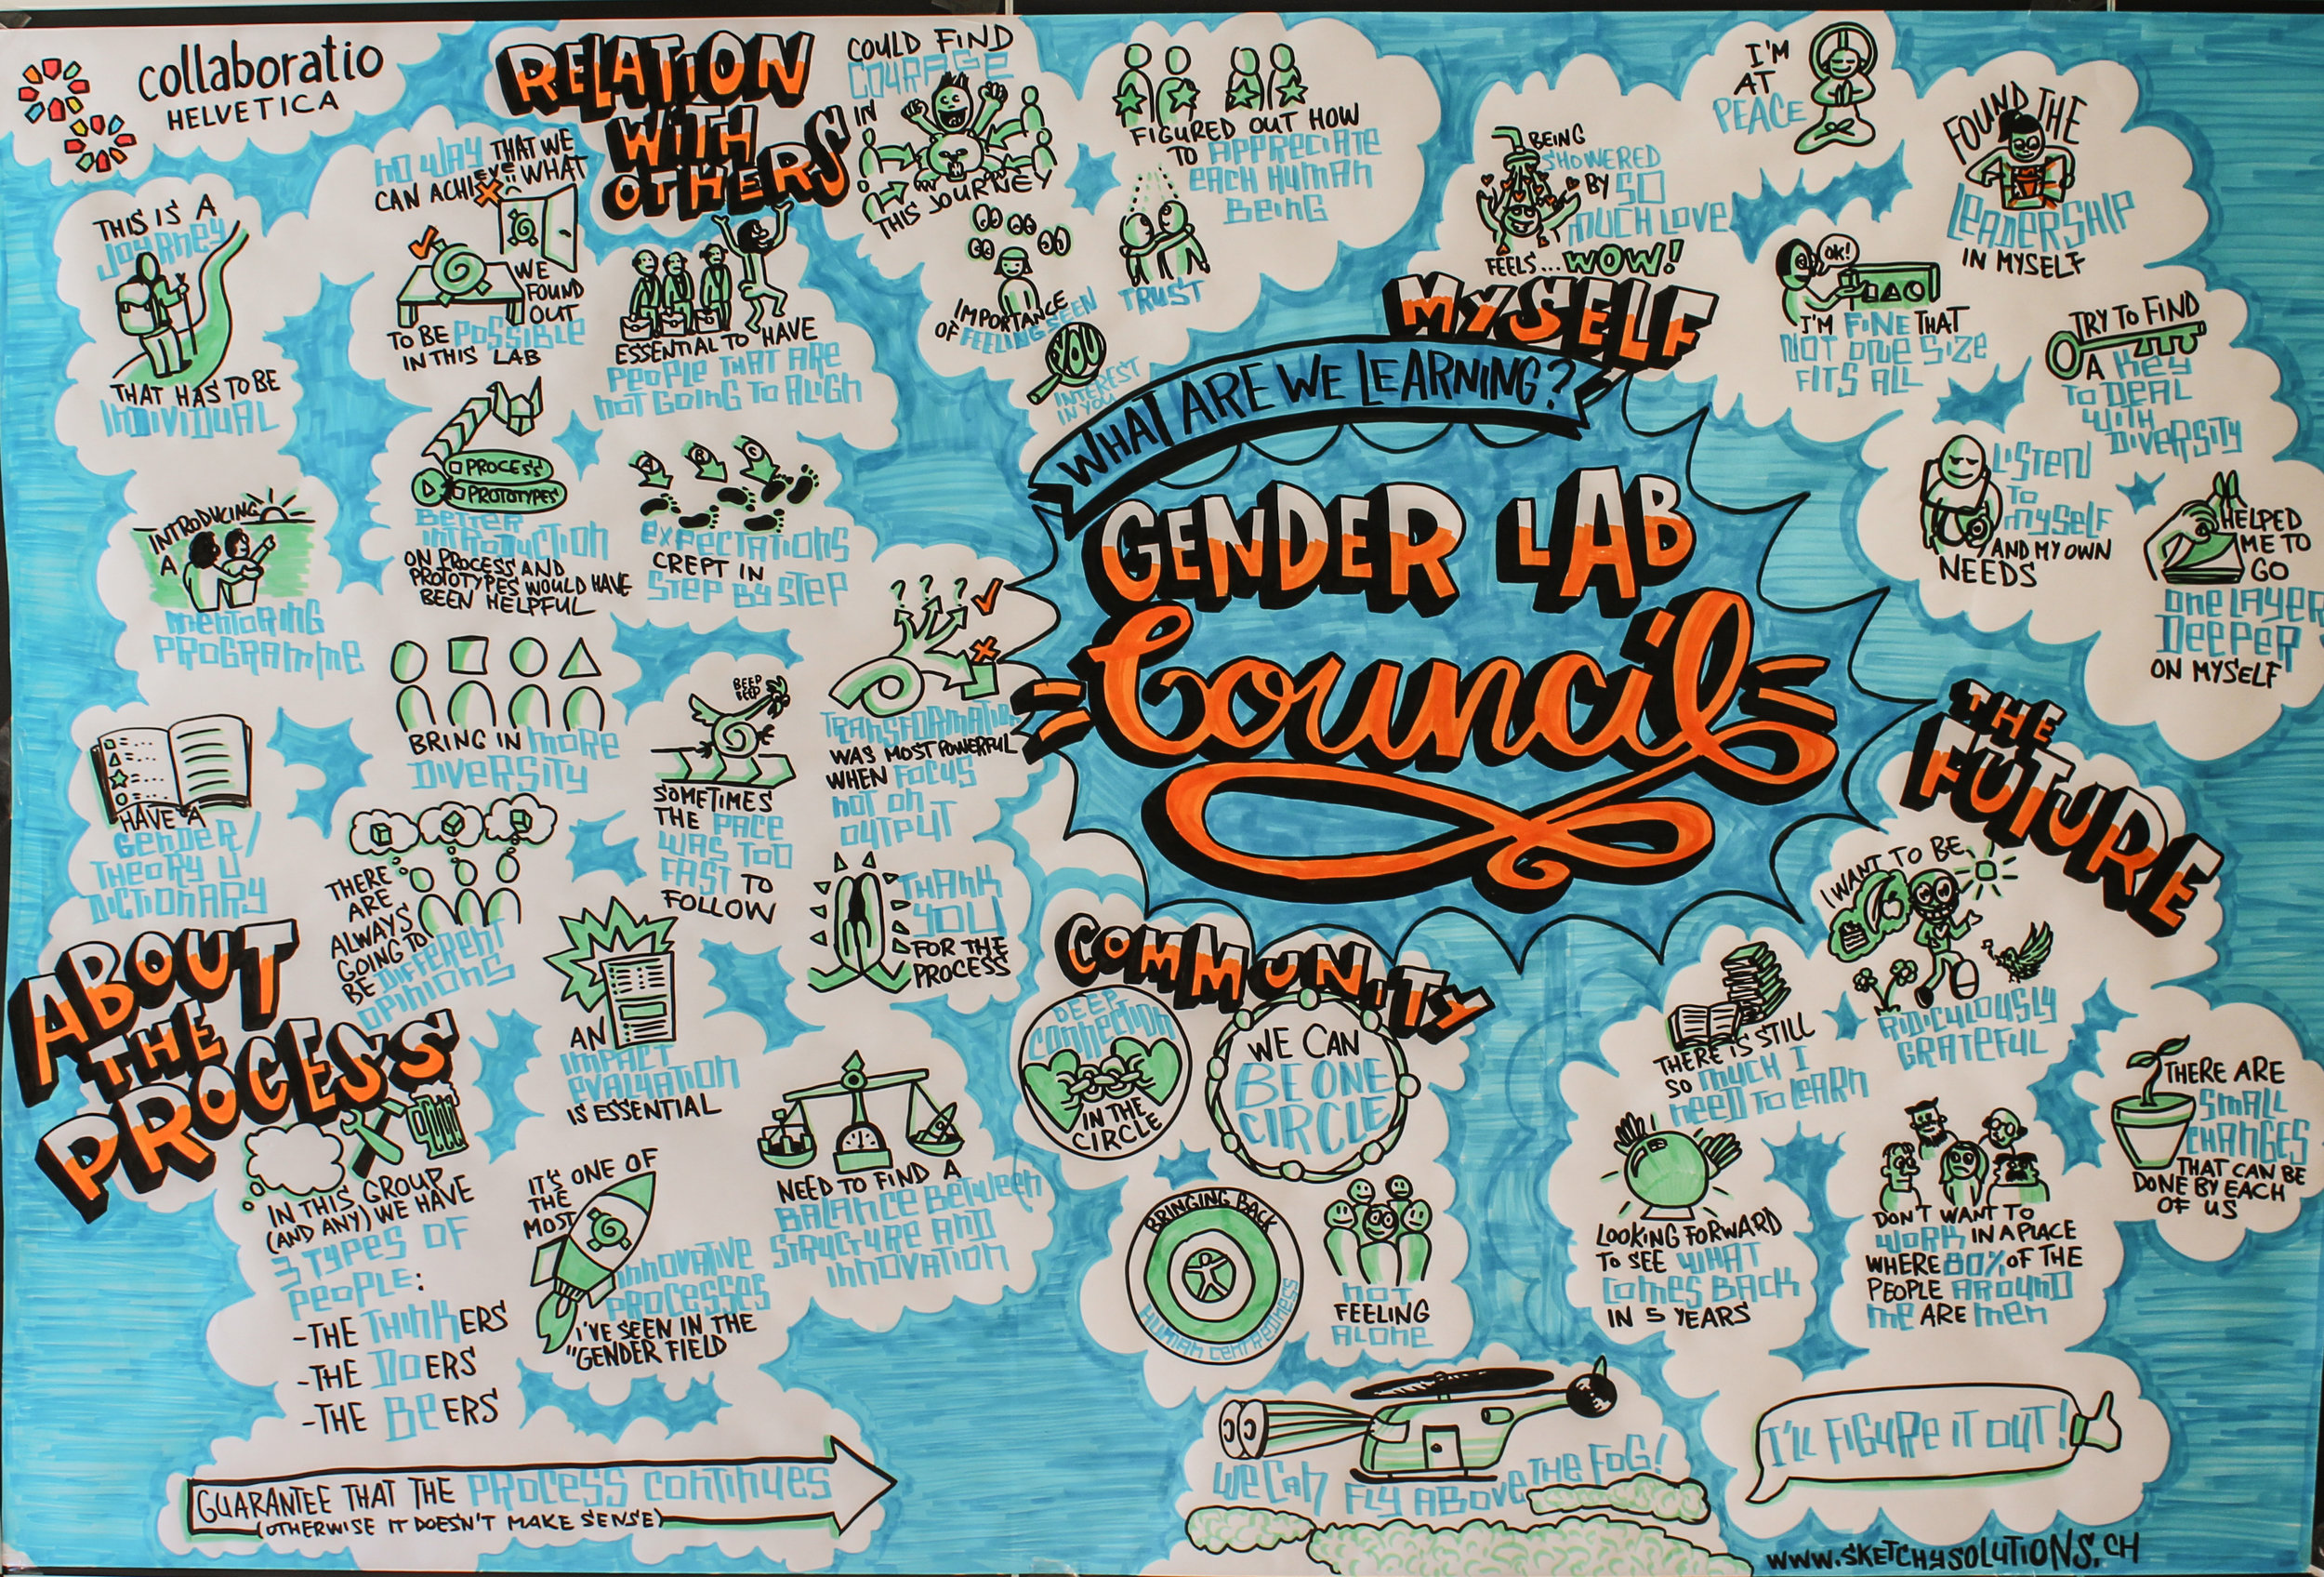 """Harvesting from the last Gender Lab retreat: """"what are we learning?"""" (by Sketchy Solutions/ Filippo Buzzini)"""